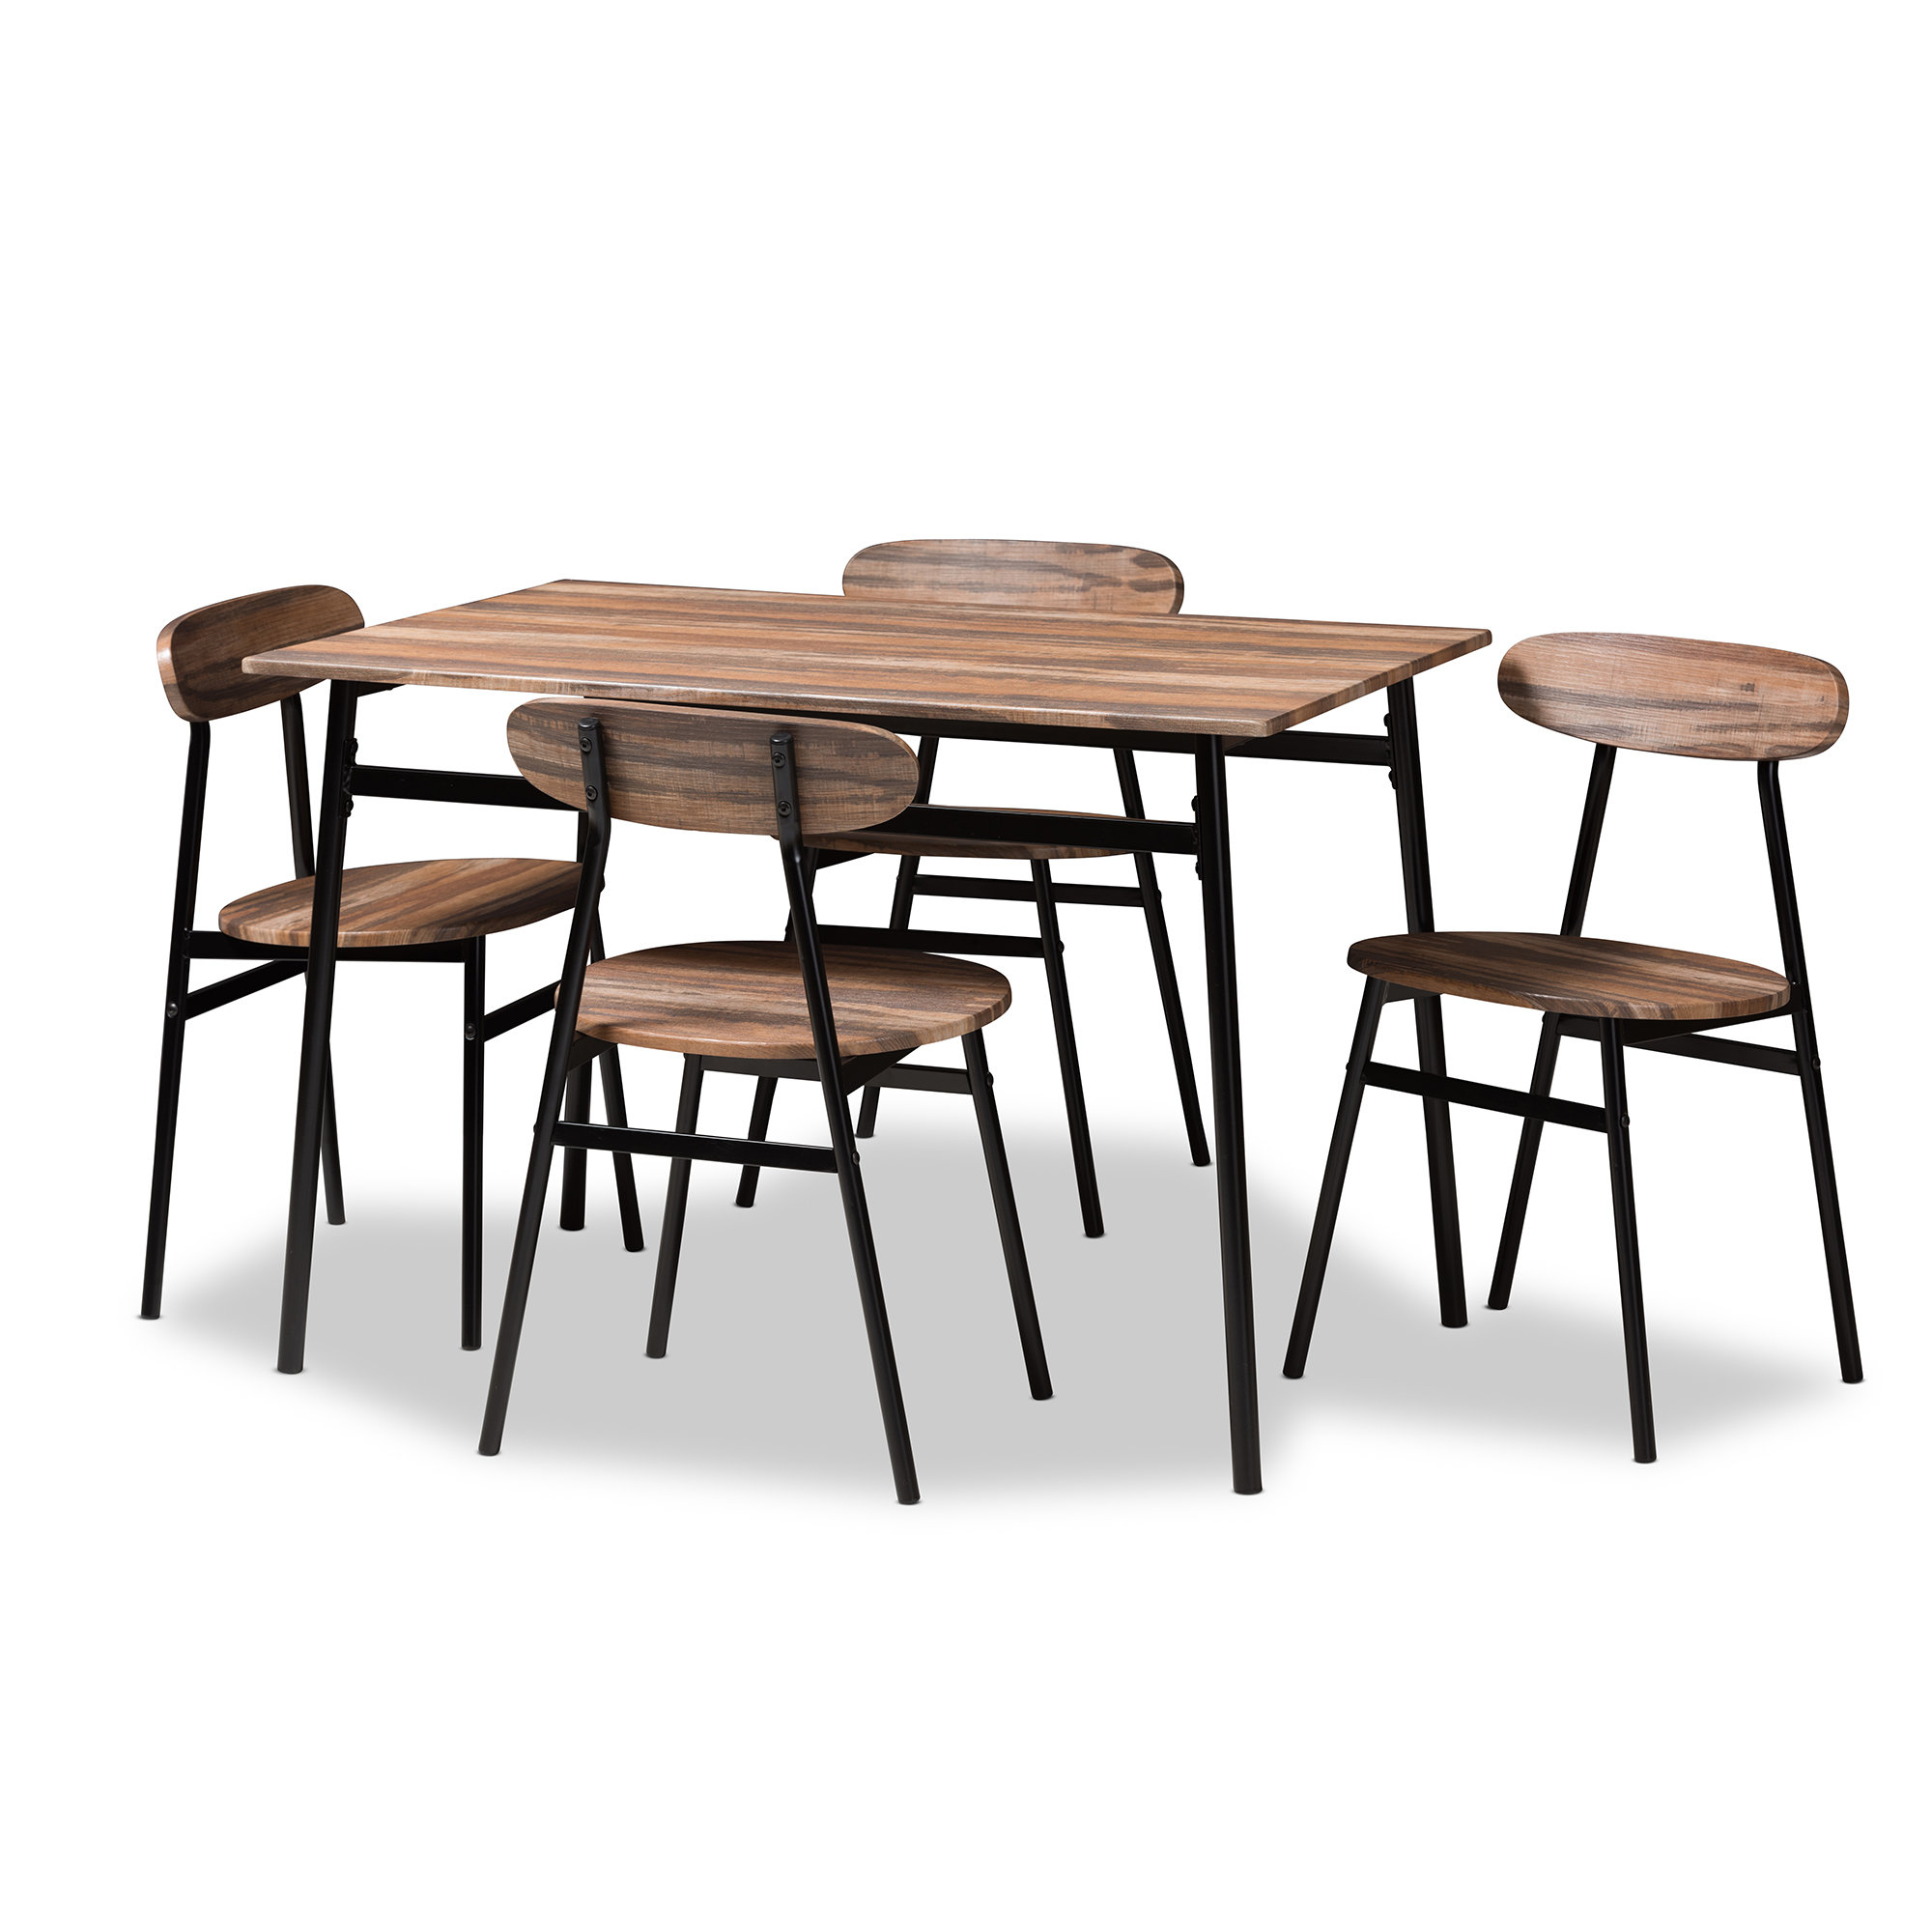 Joss & Main With Regard To Popular Wiggs 5 Piece Dining Sets (View 4 of 20)